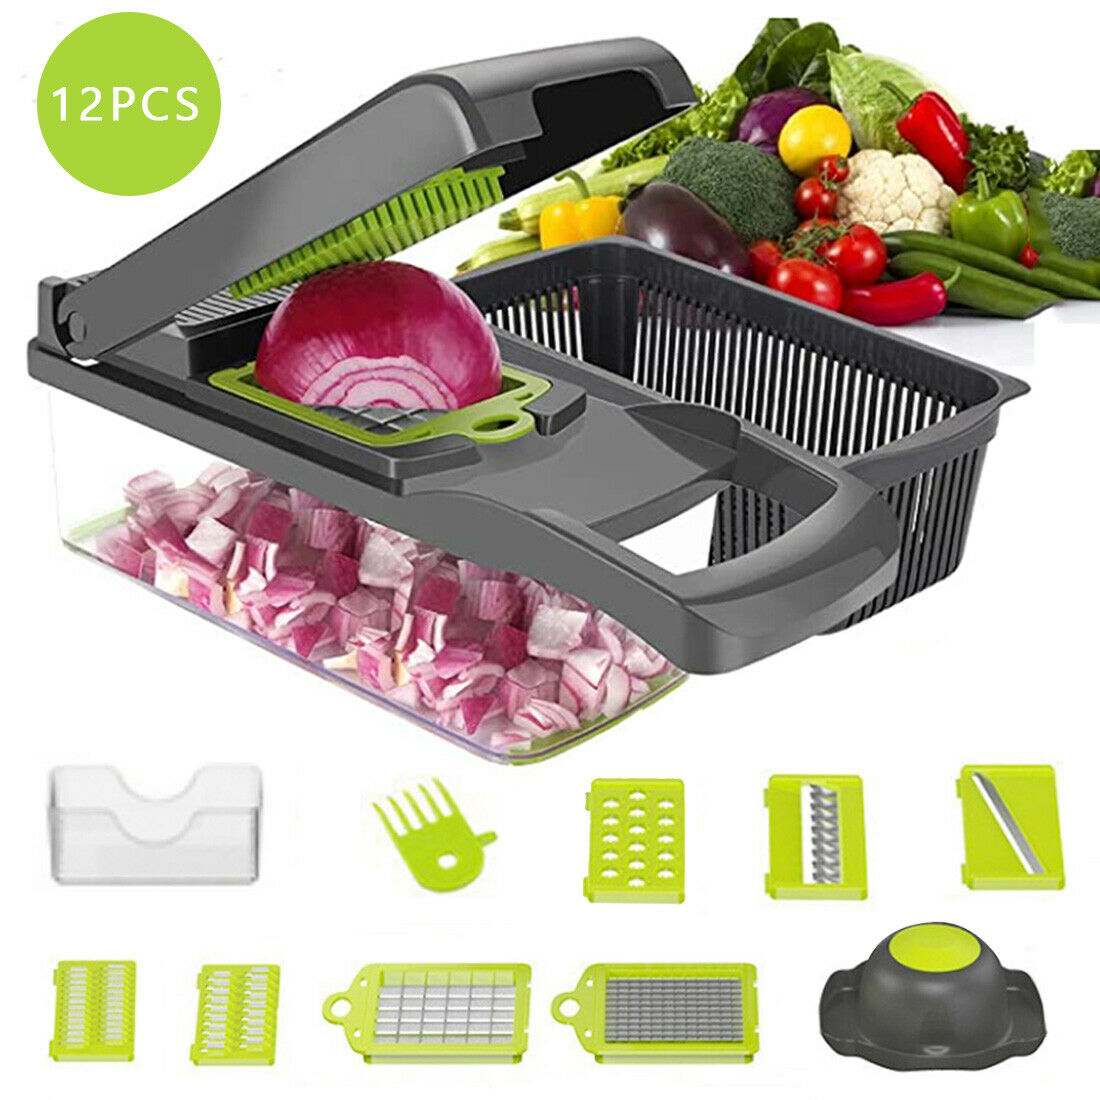 12 in 1 Vegetable Chopper Slicer Onion Dicer Veggie Slicer with Colander Basket